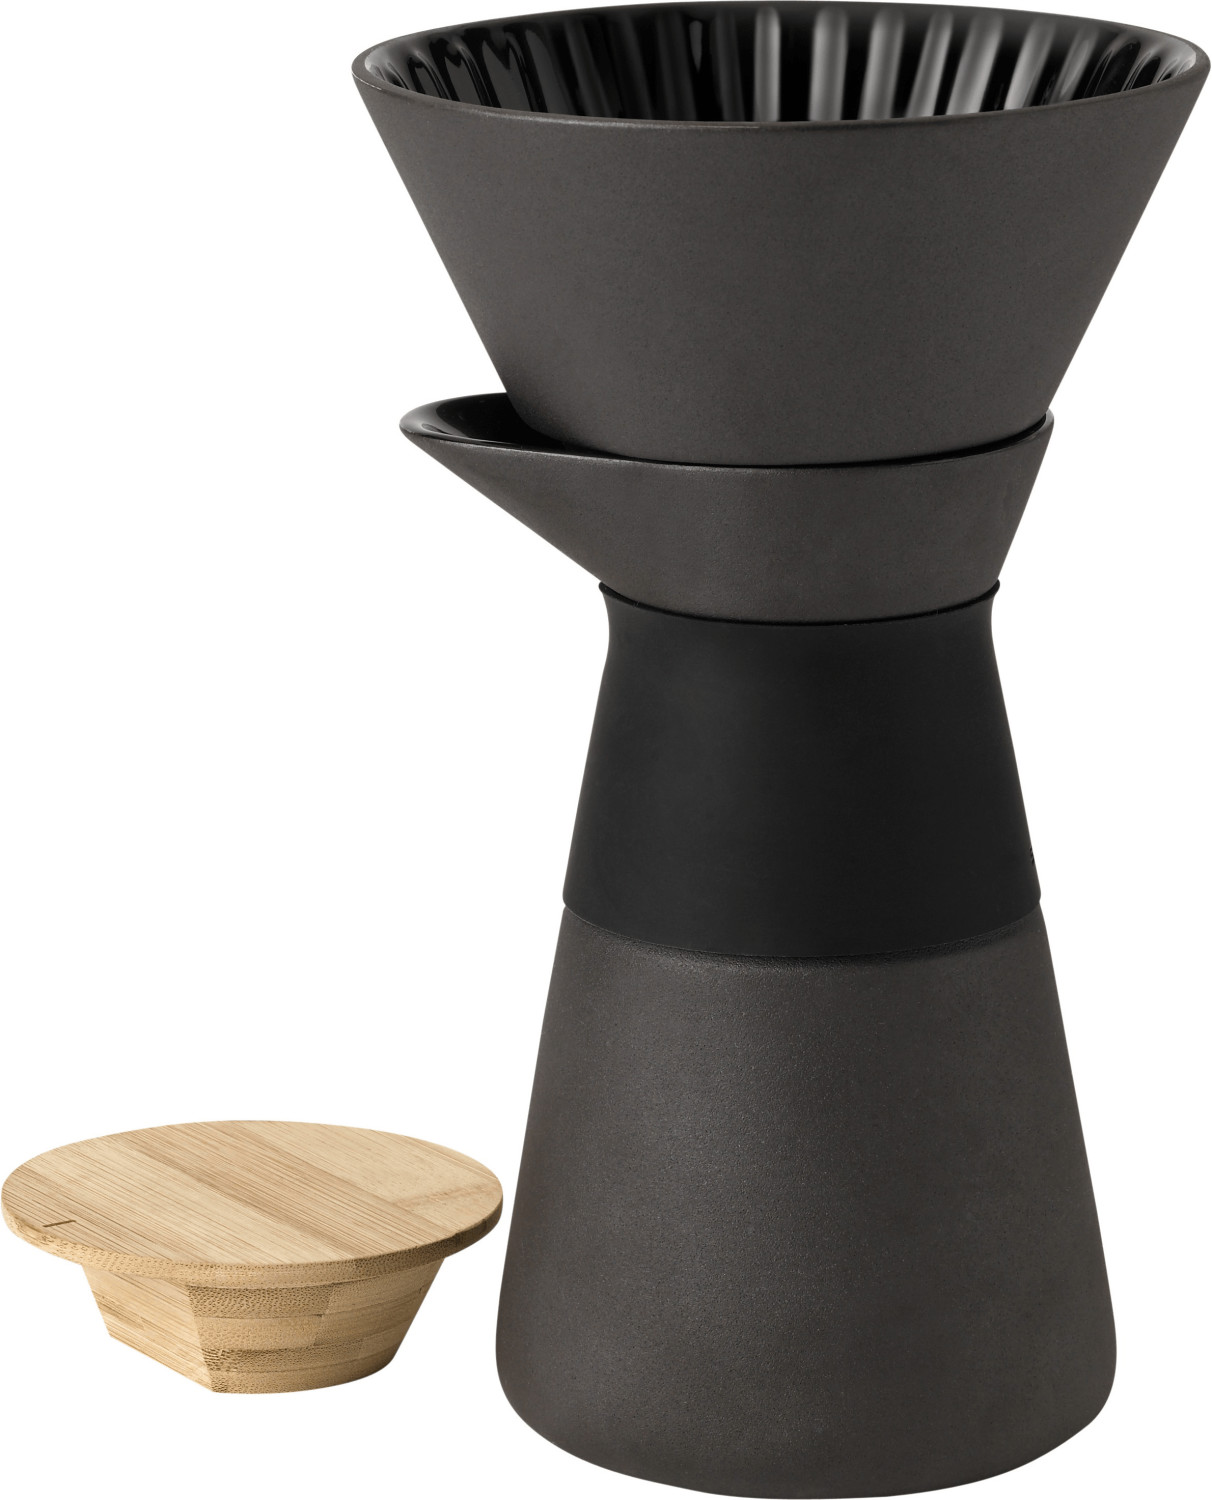 *Stelton Theo Slow Brew Black*